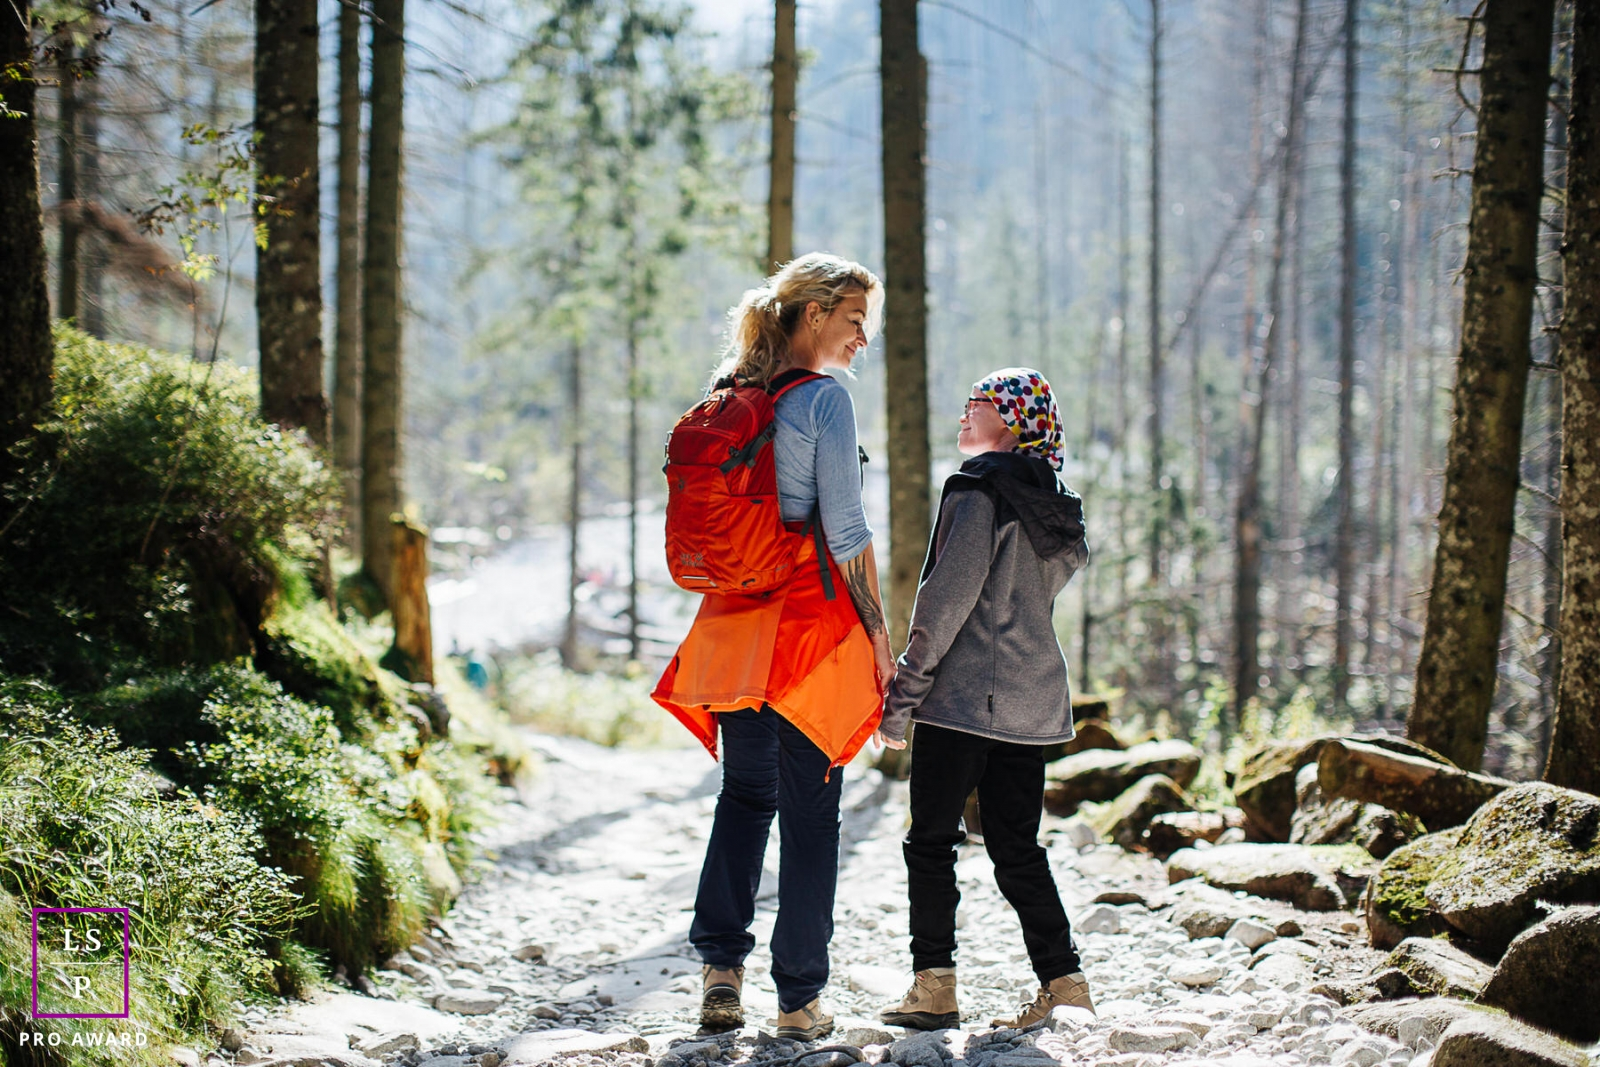 A mother and daughter lifestyle portrait on a walking trail in Poland.